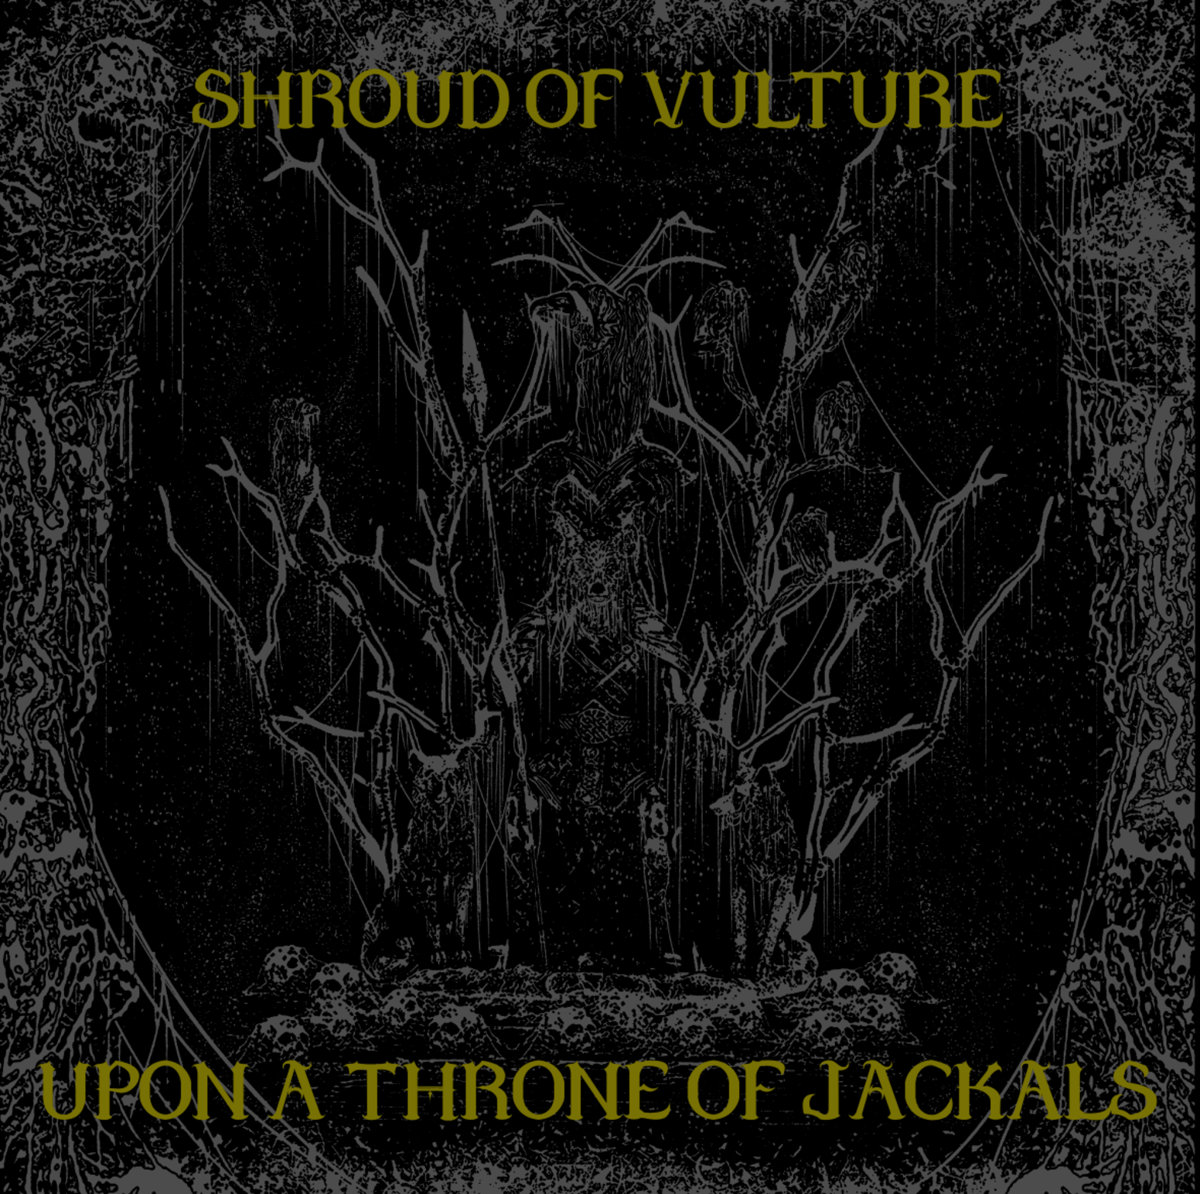 shroud of vulture upon a throne of jackals